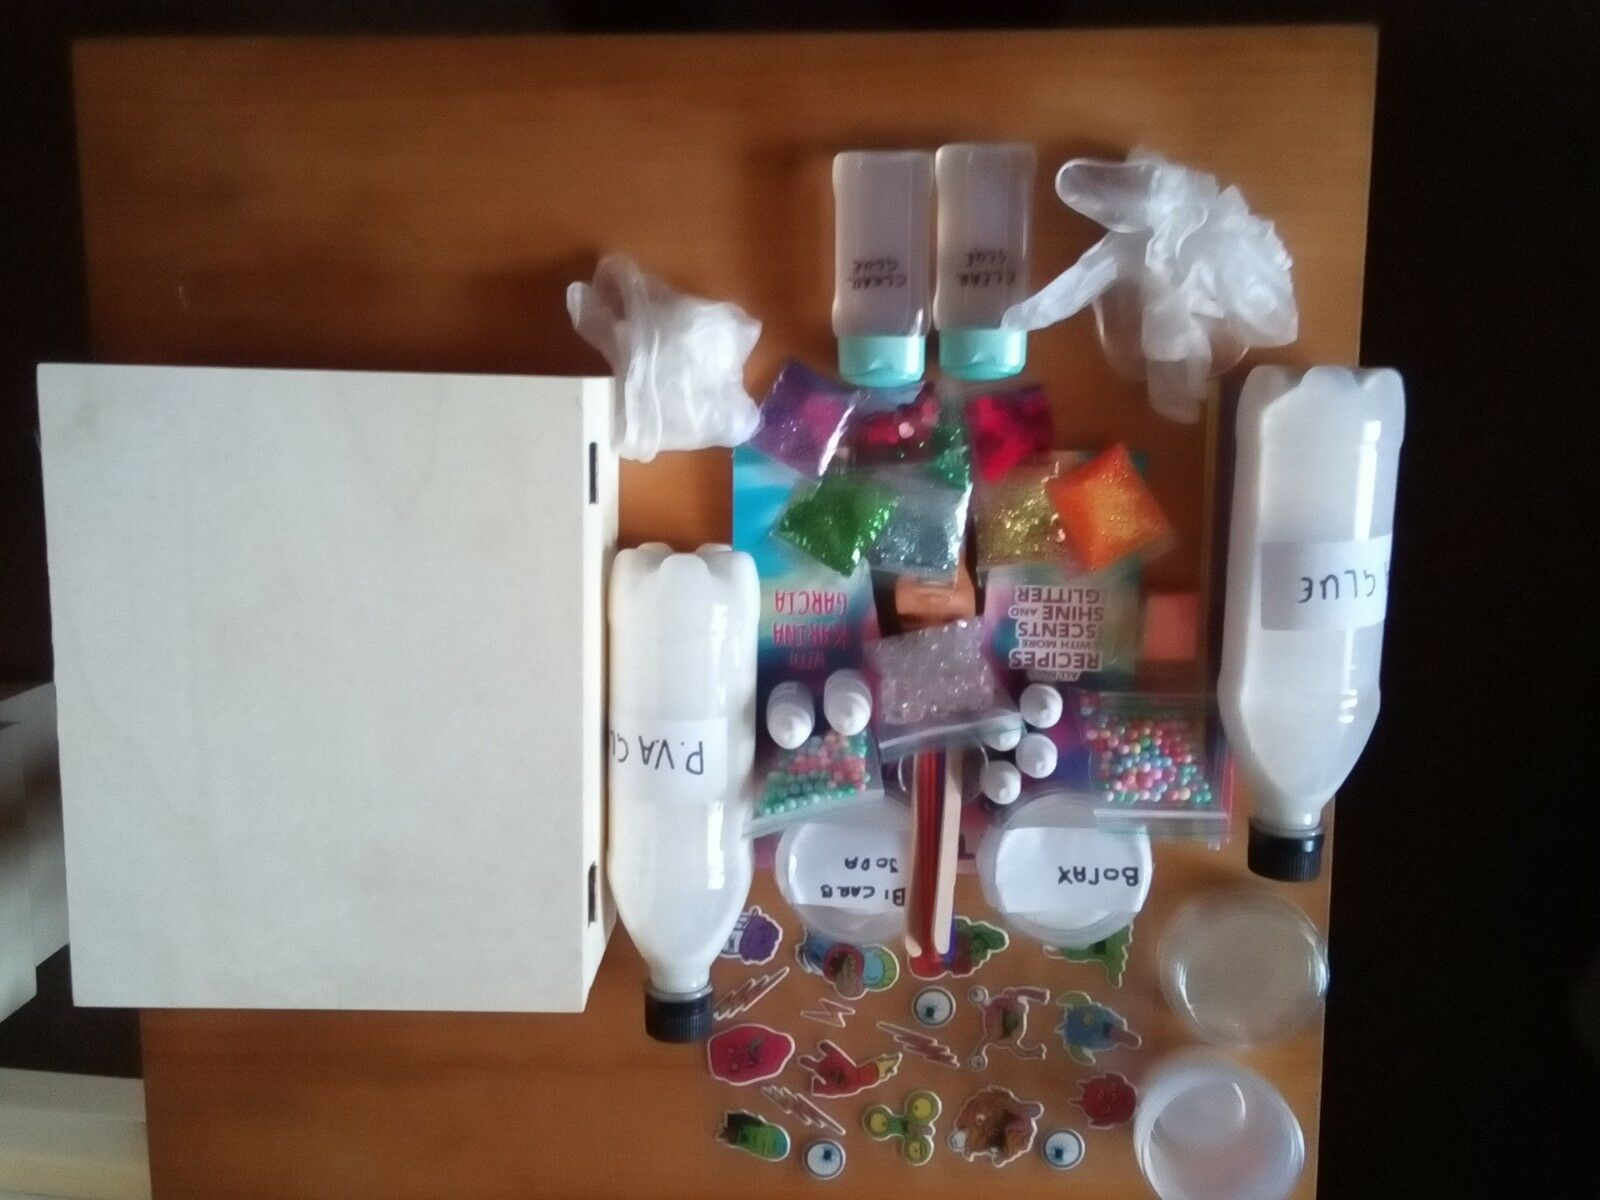 Mega slime kit. Pva and clear glue. Activator, borax. coloring, glitter + more.